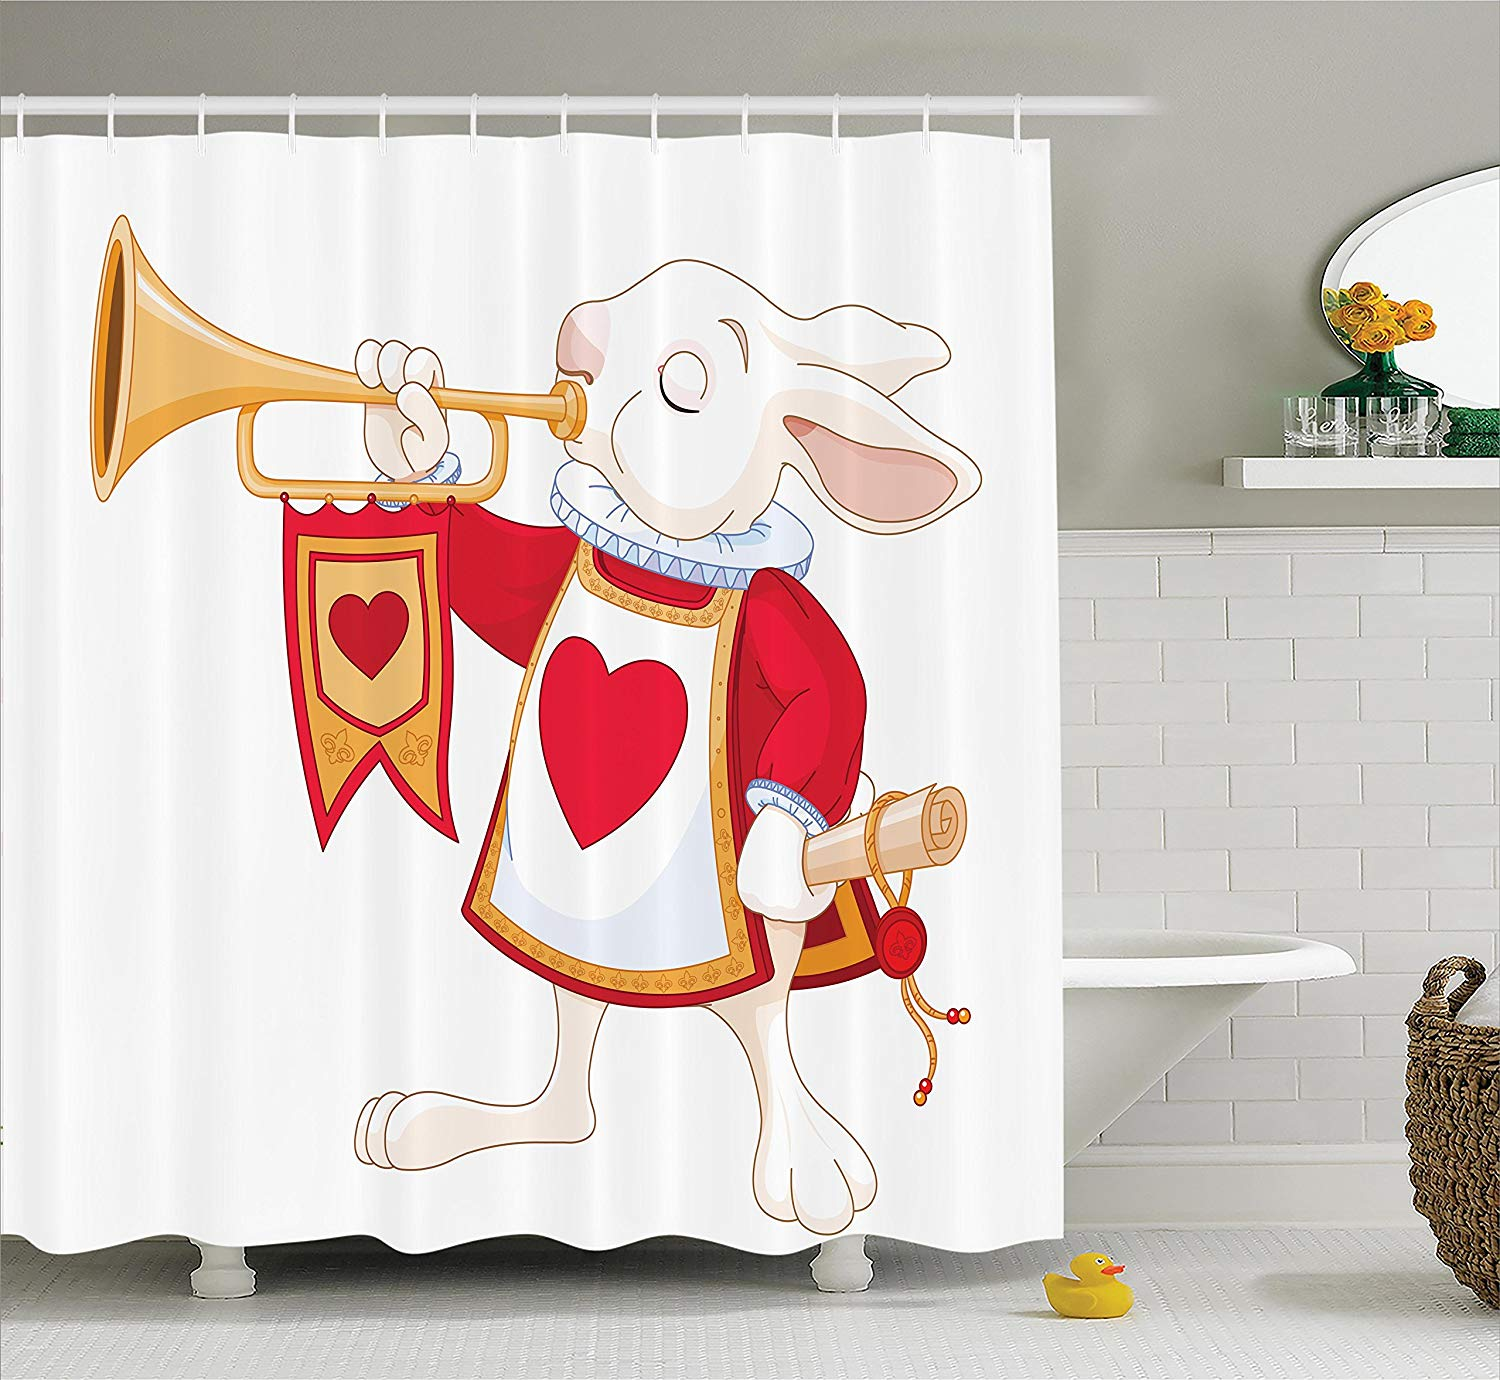 Garden Curtains Home Decor Shower Curtain Hooks Inside Seuss